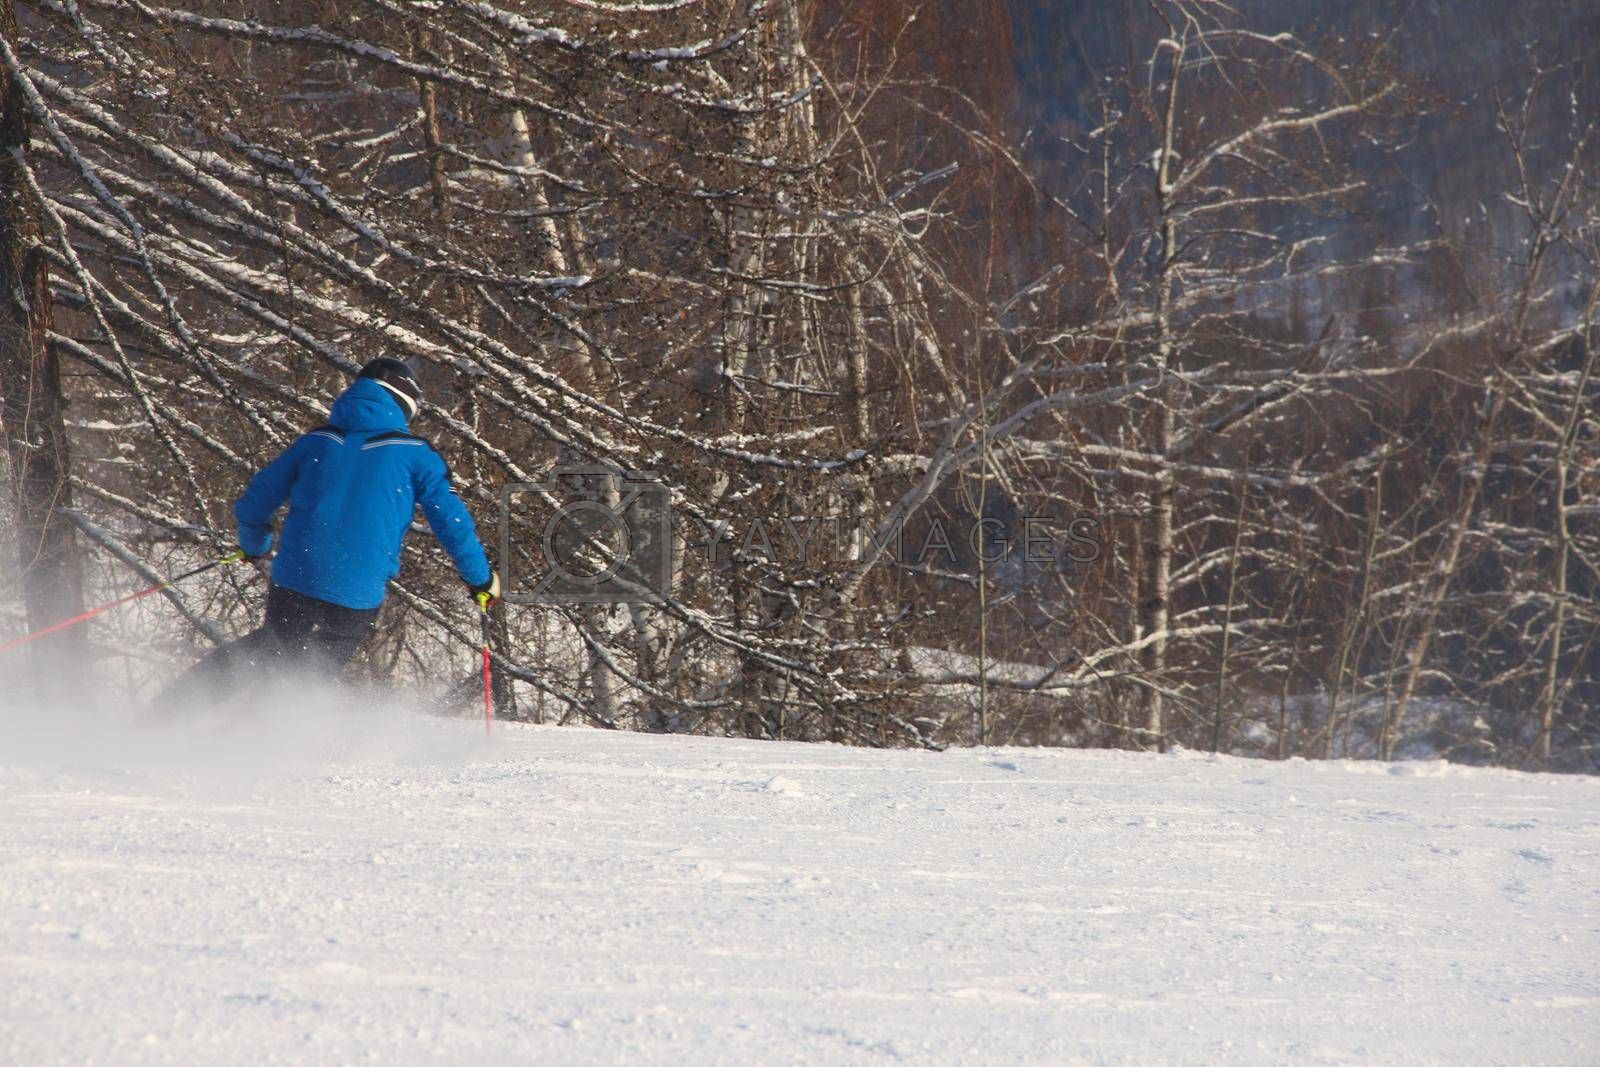 Male skier skiing downhill in mountains snowy day